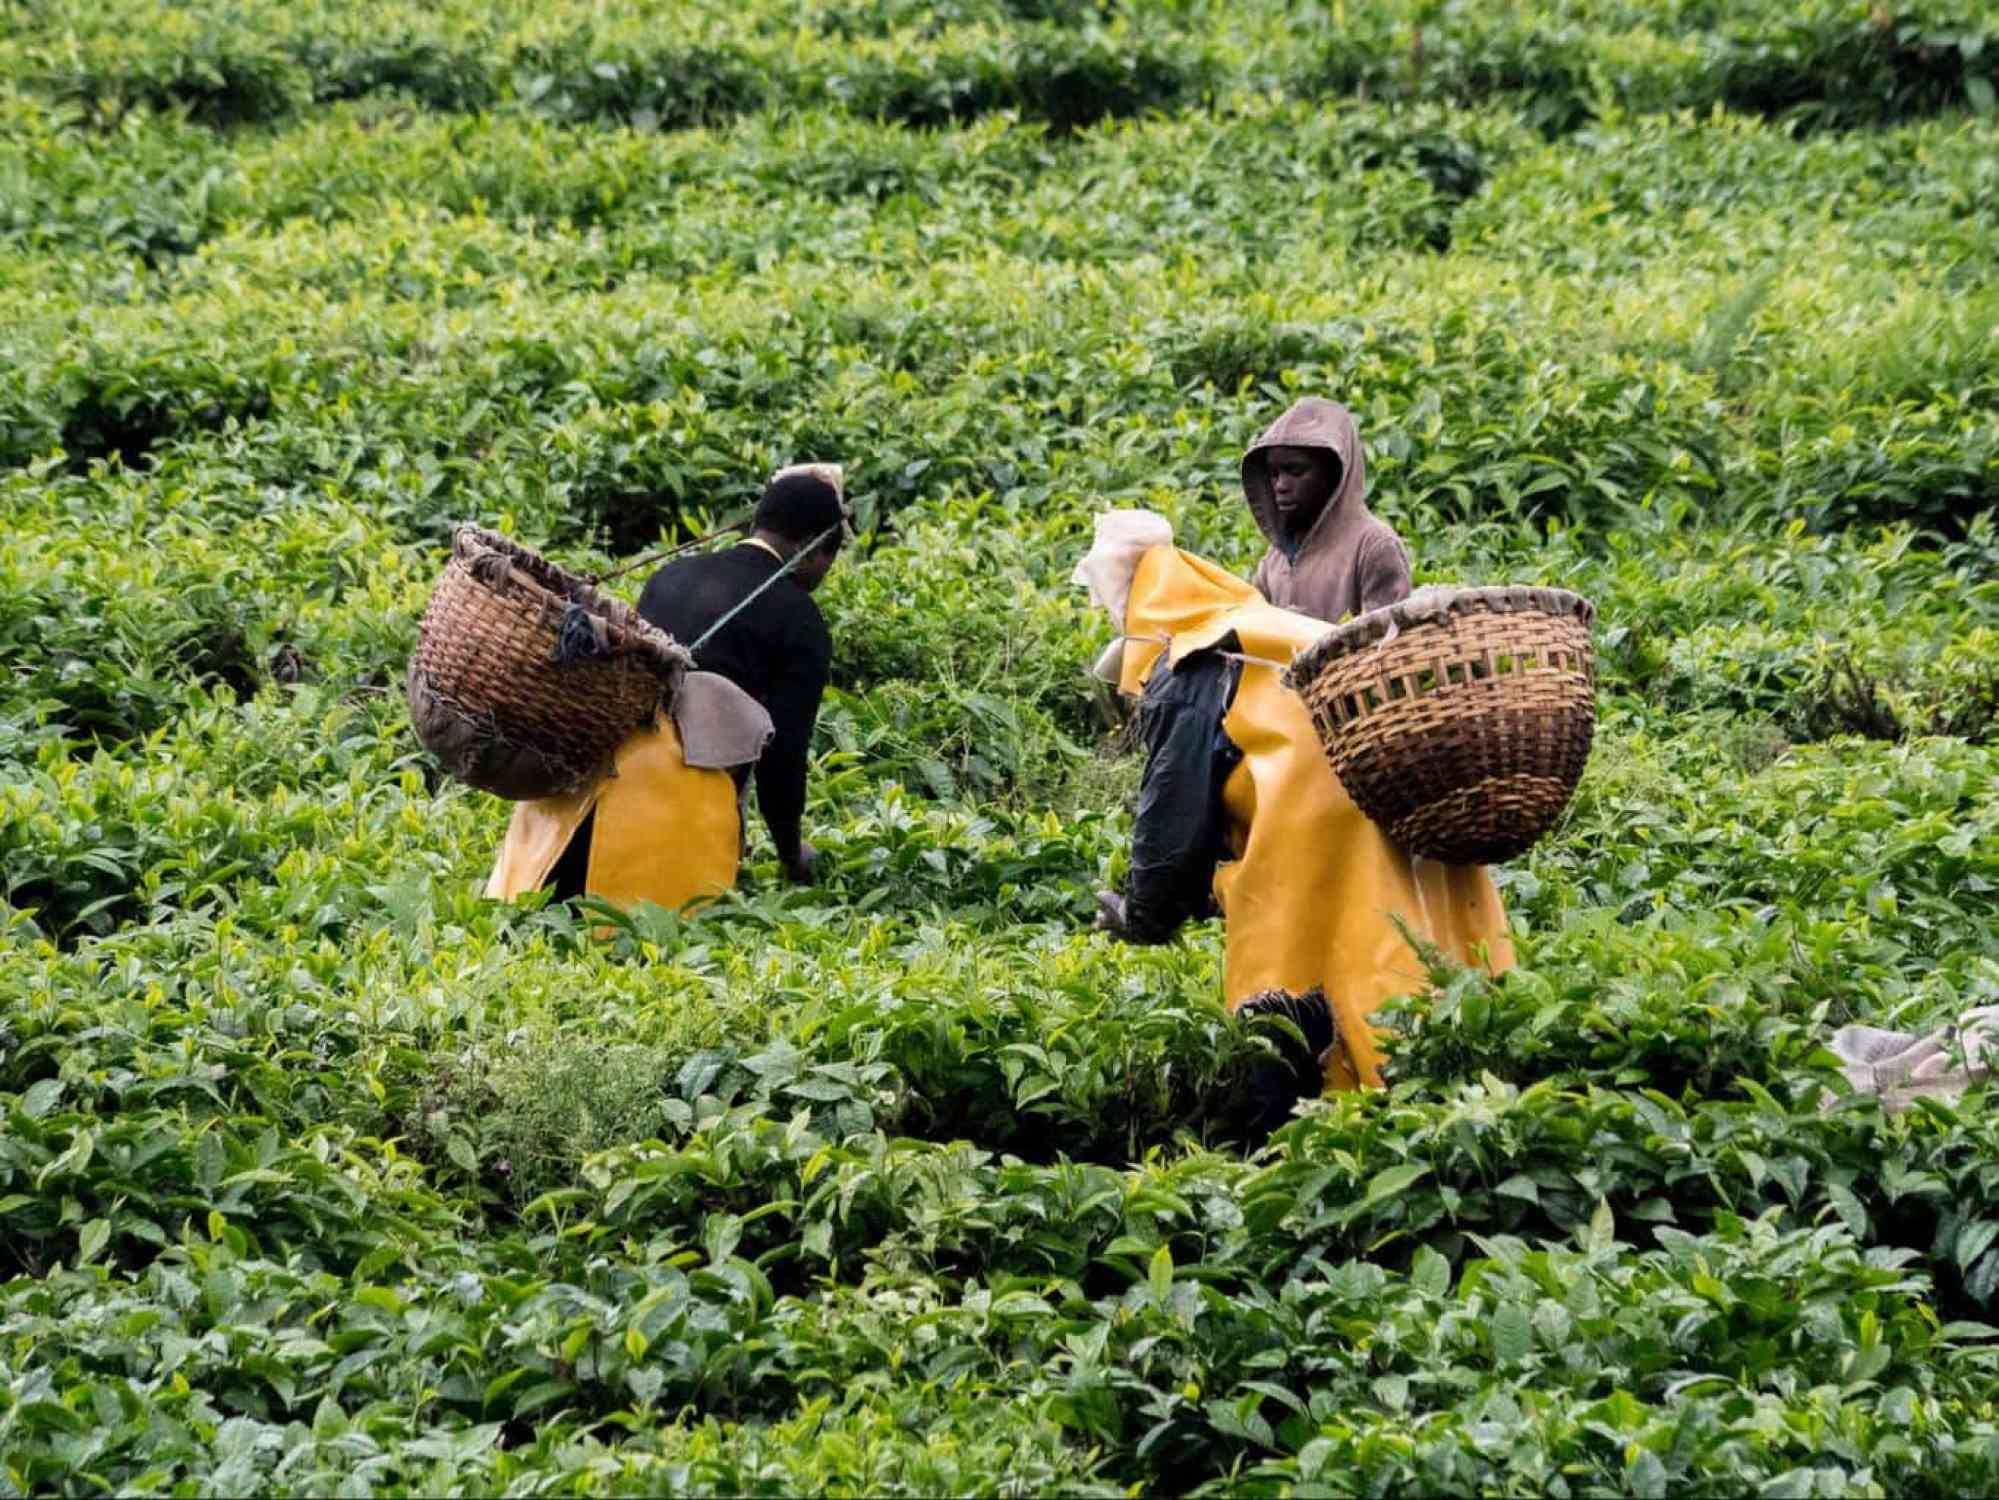 Tea plantation near Lake Kivu